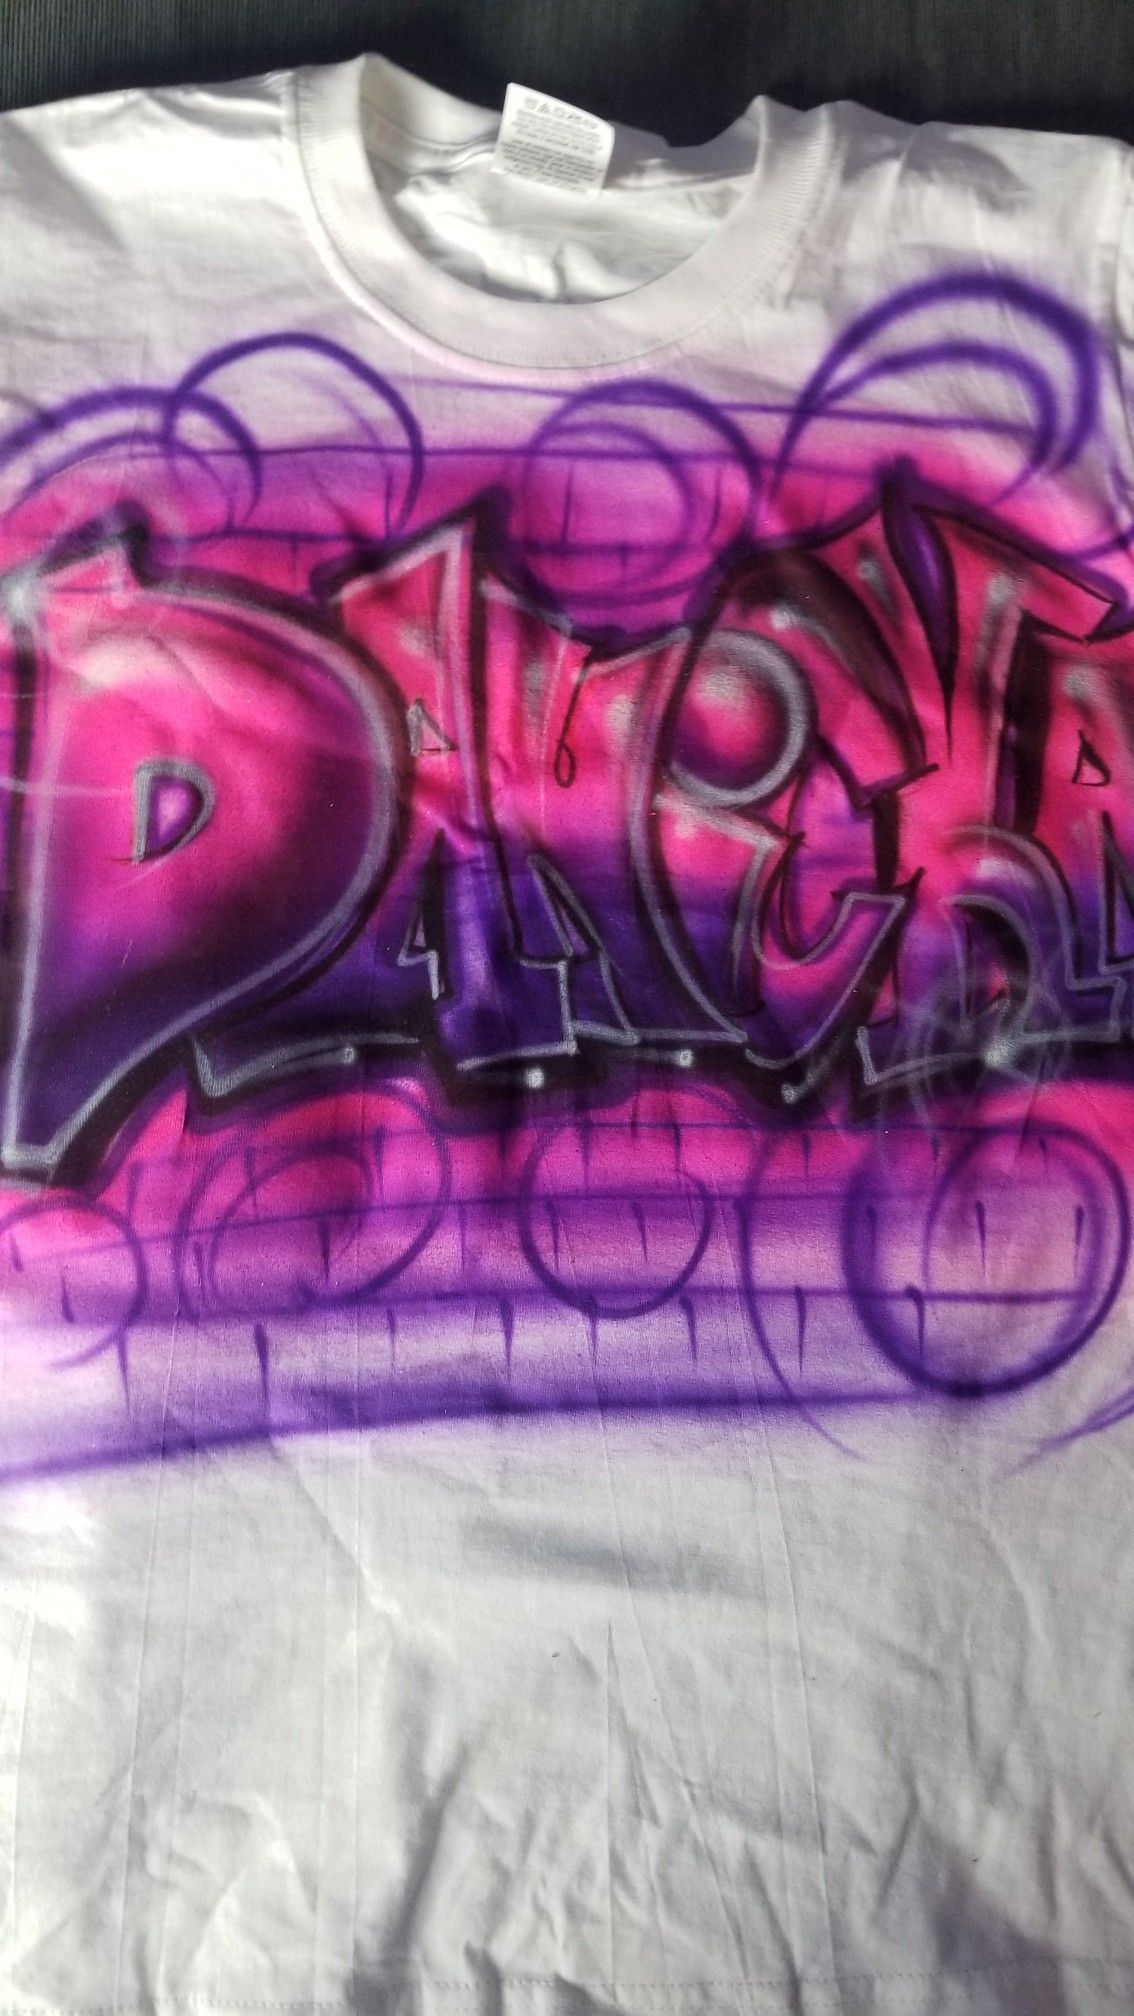 Graffiti Airbrush T Shirt Design Custom Painted In Neon Pink And